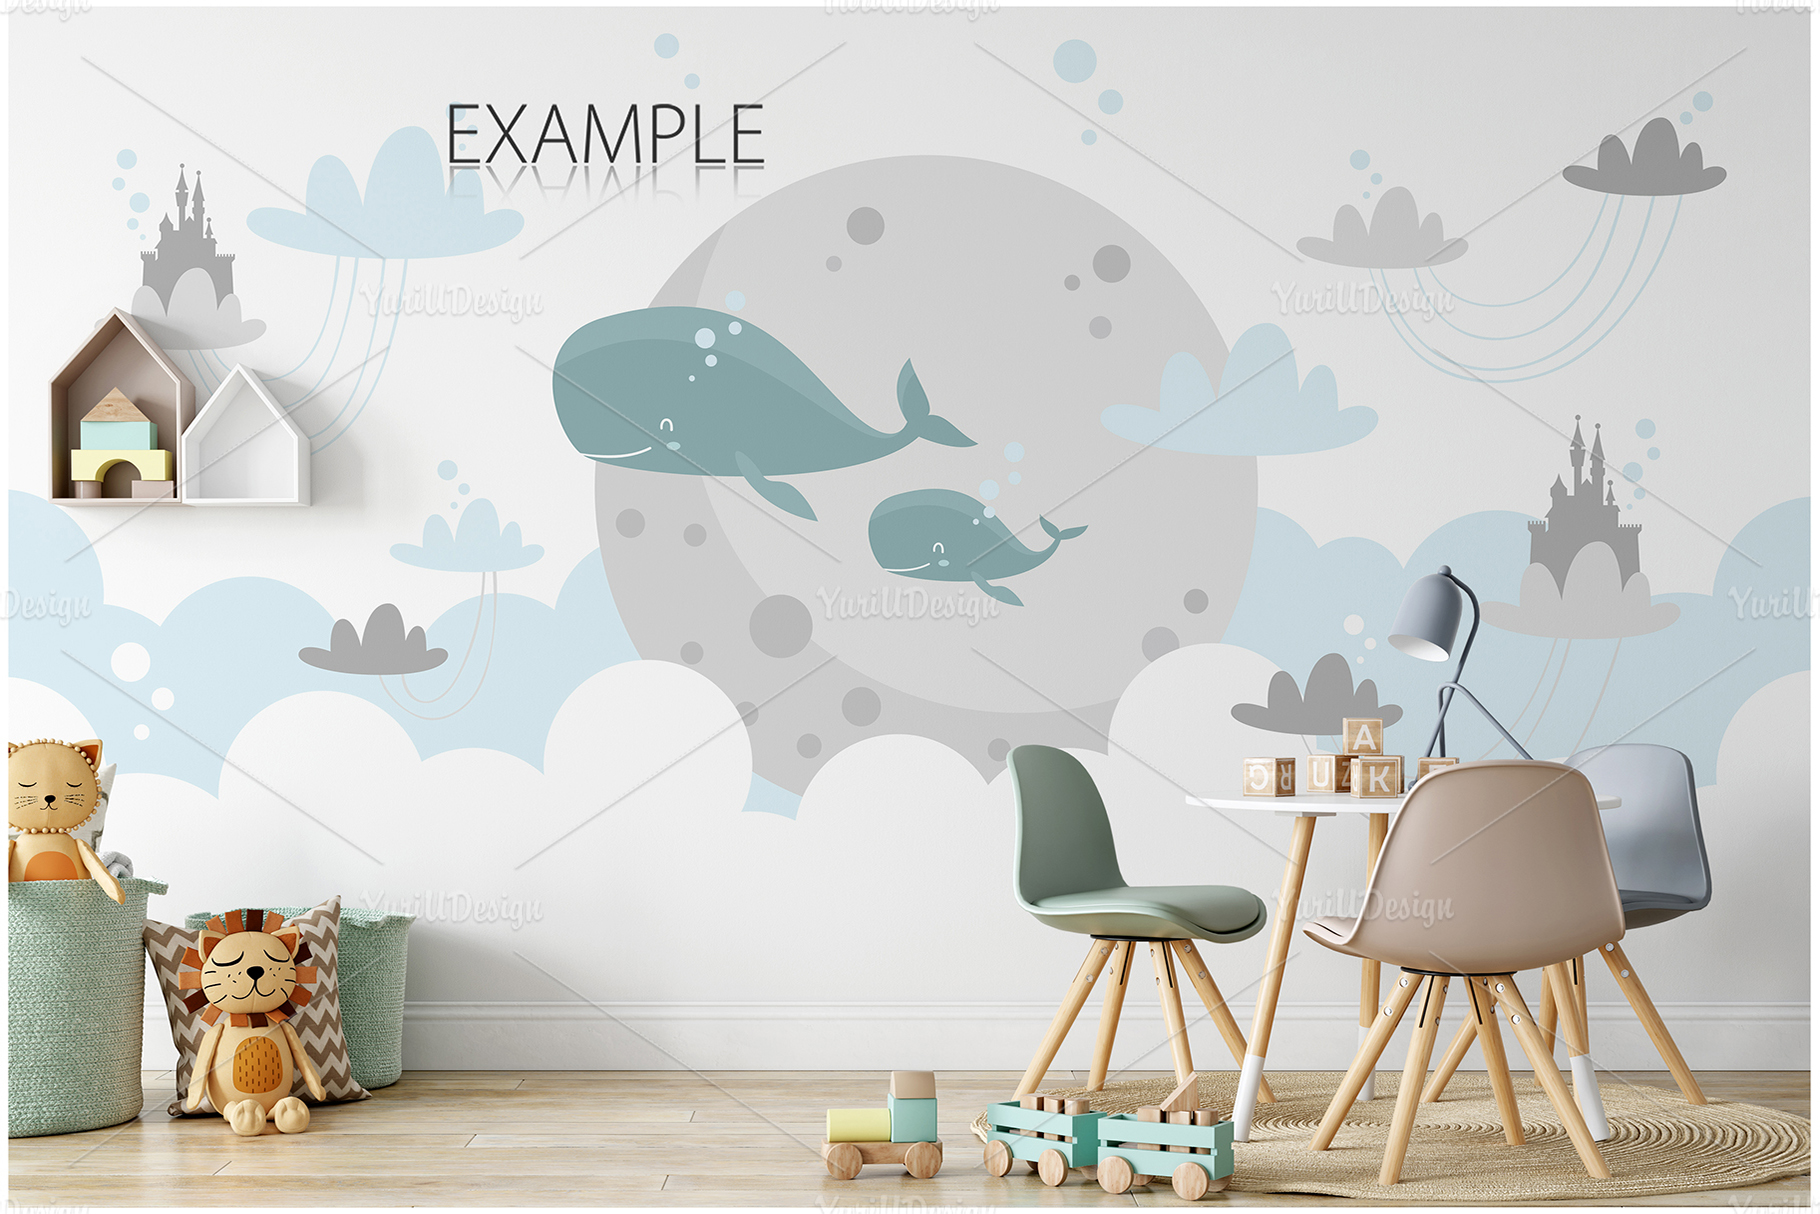 Kids Frames & Wall Mockup Bundle - 5 example image 4